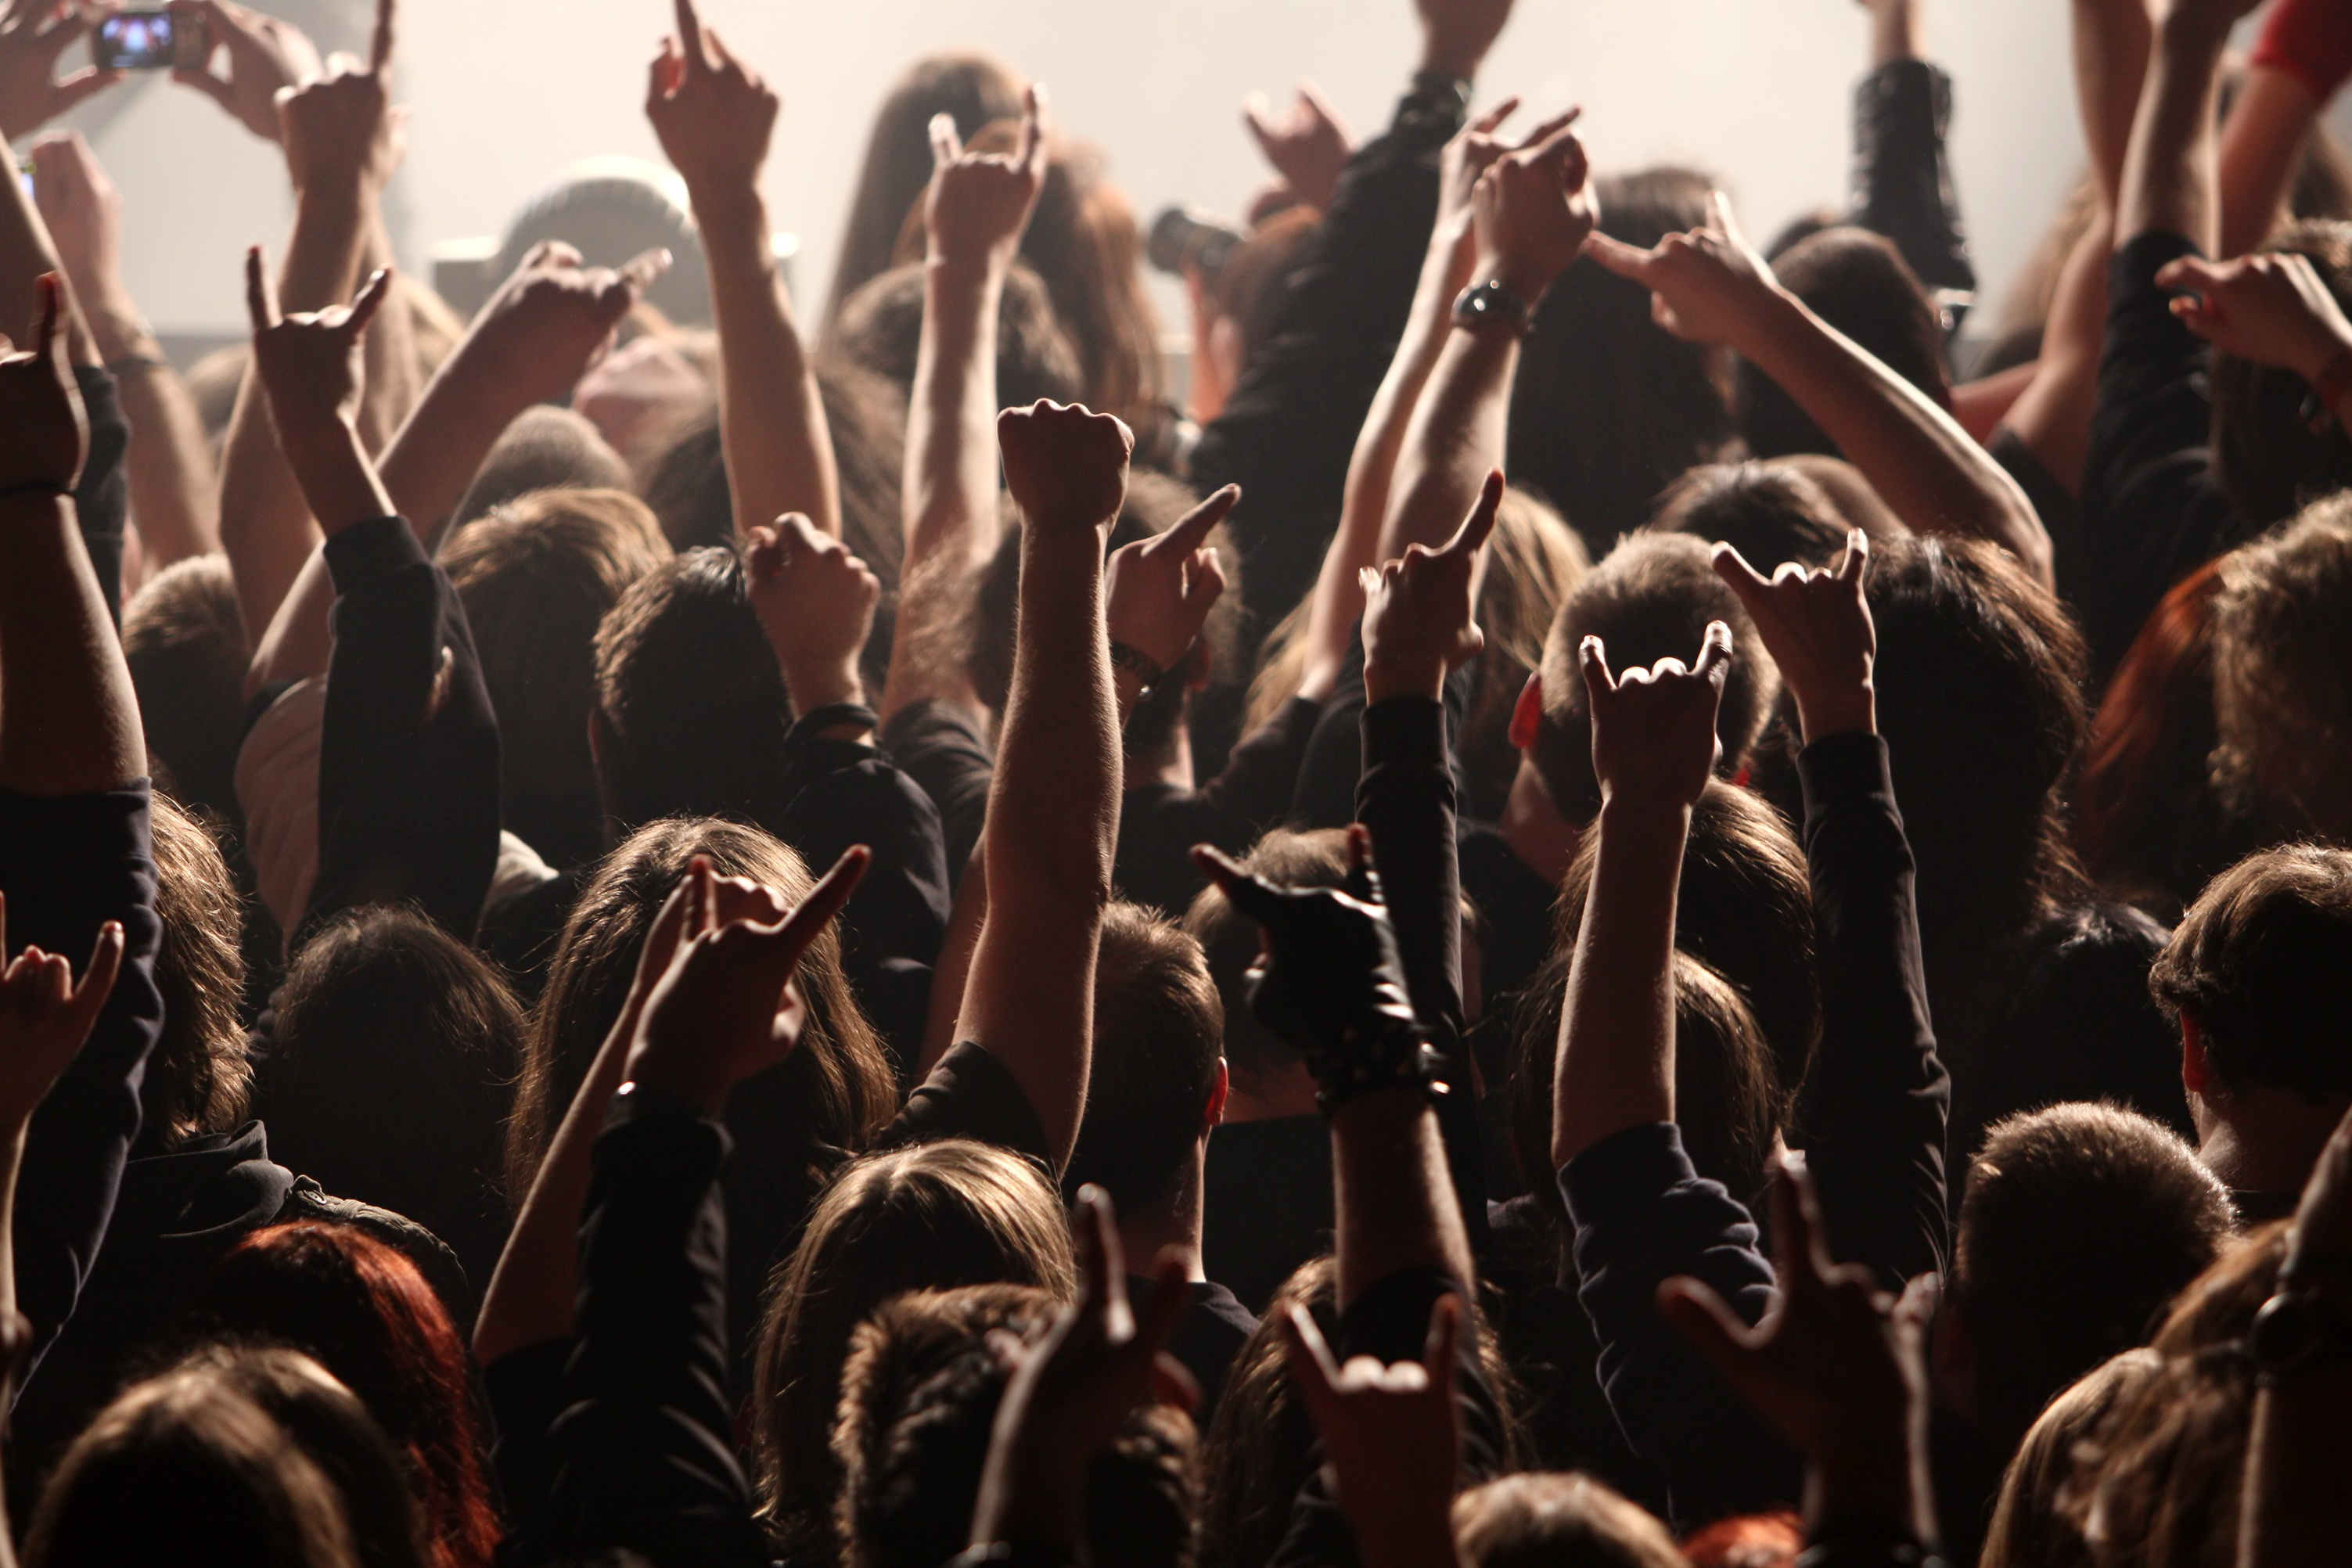 A crowd of people hold their arms in the air at a rock concert